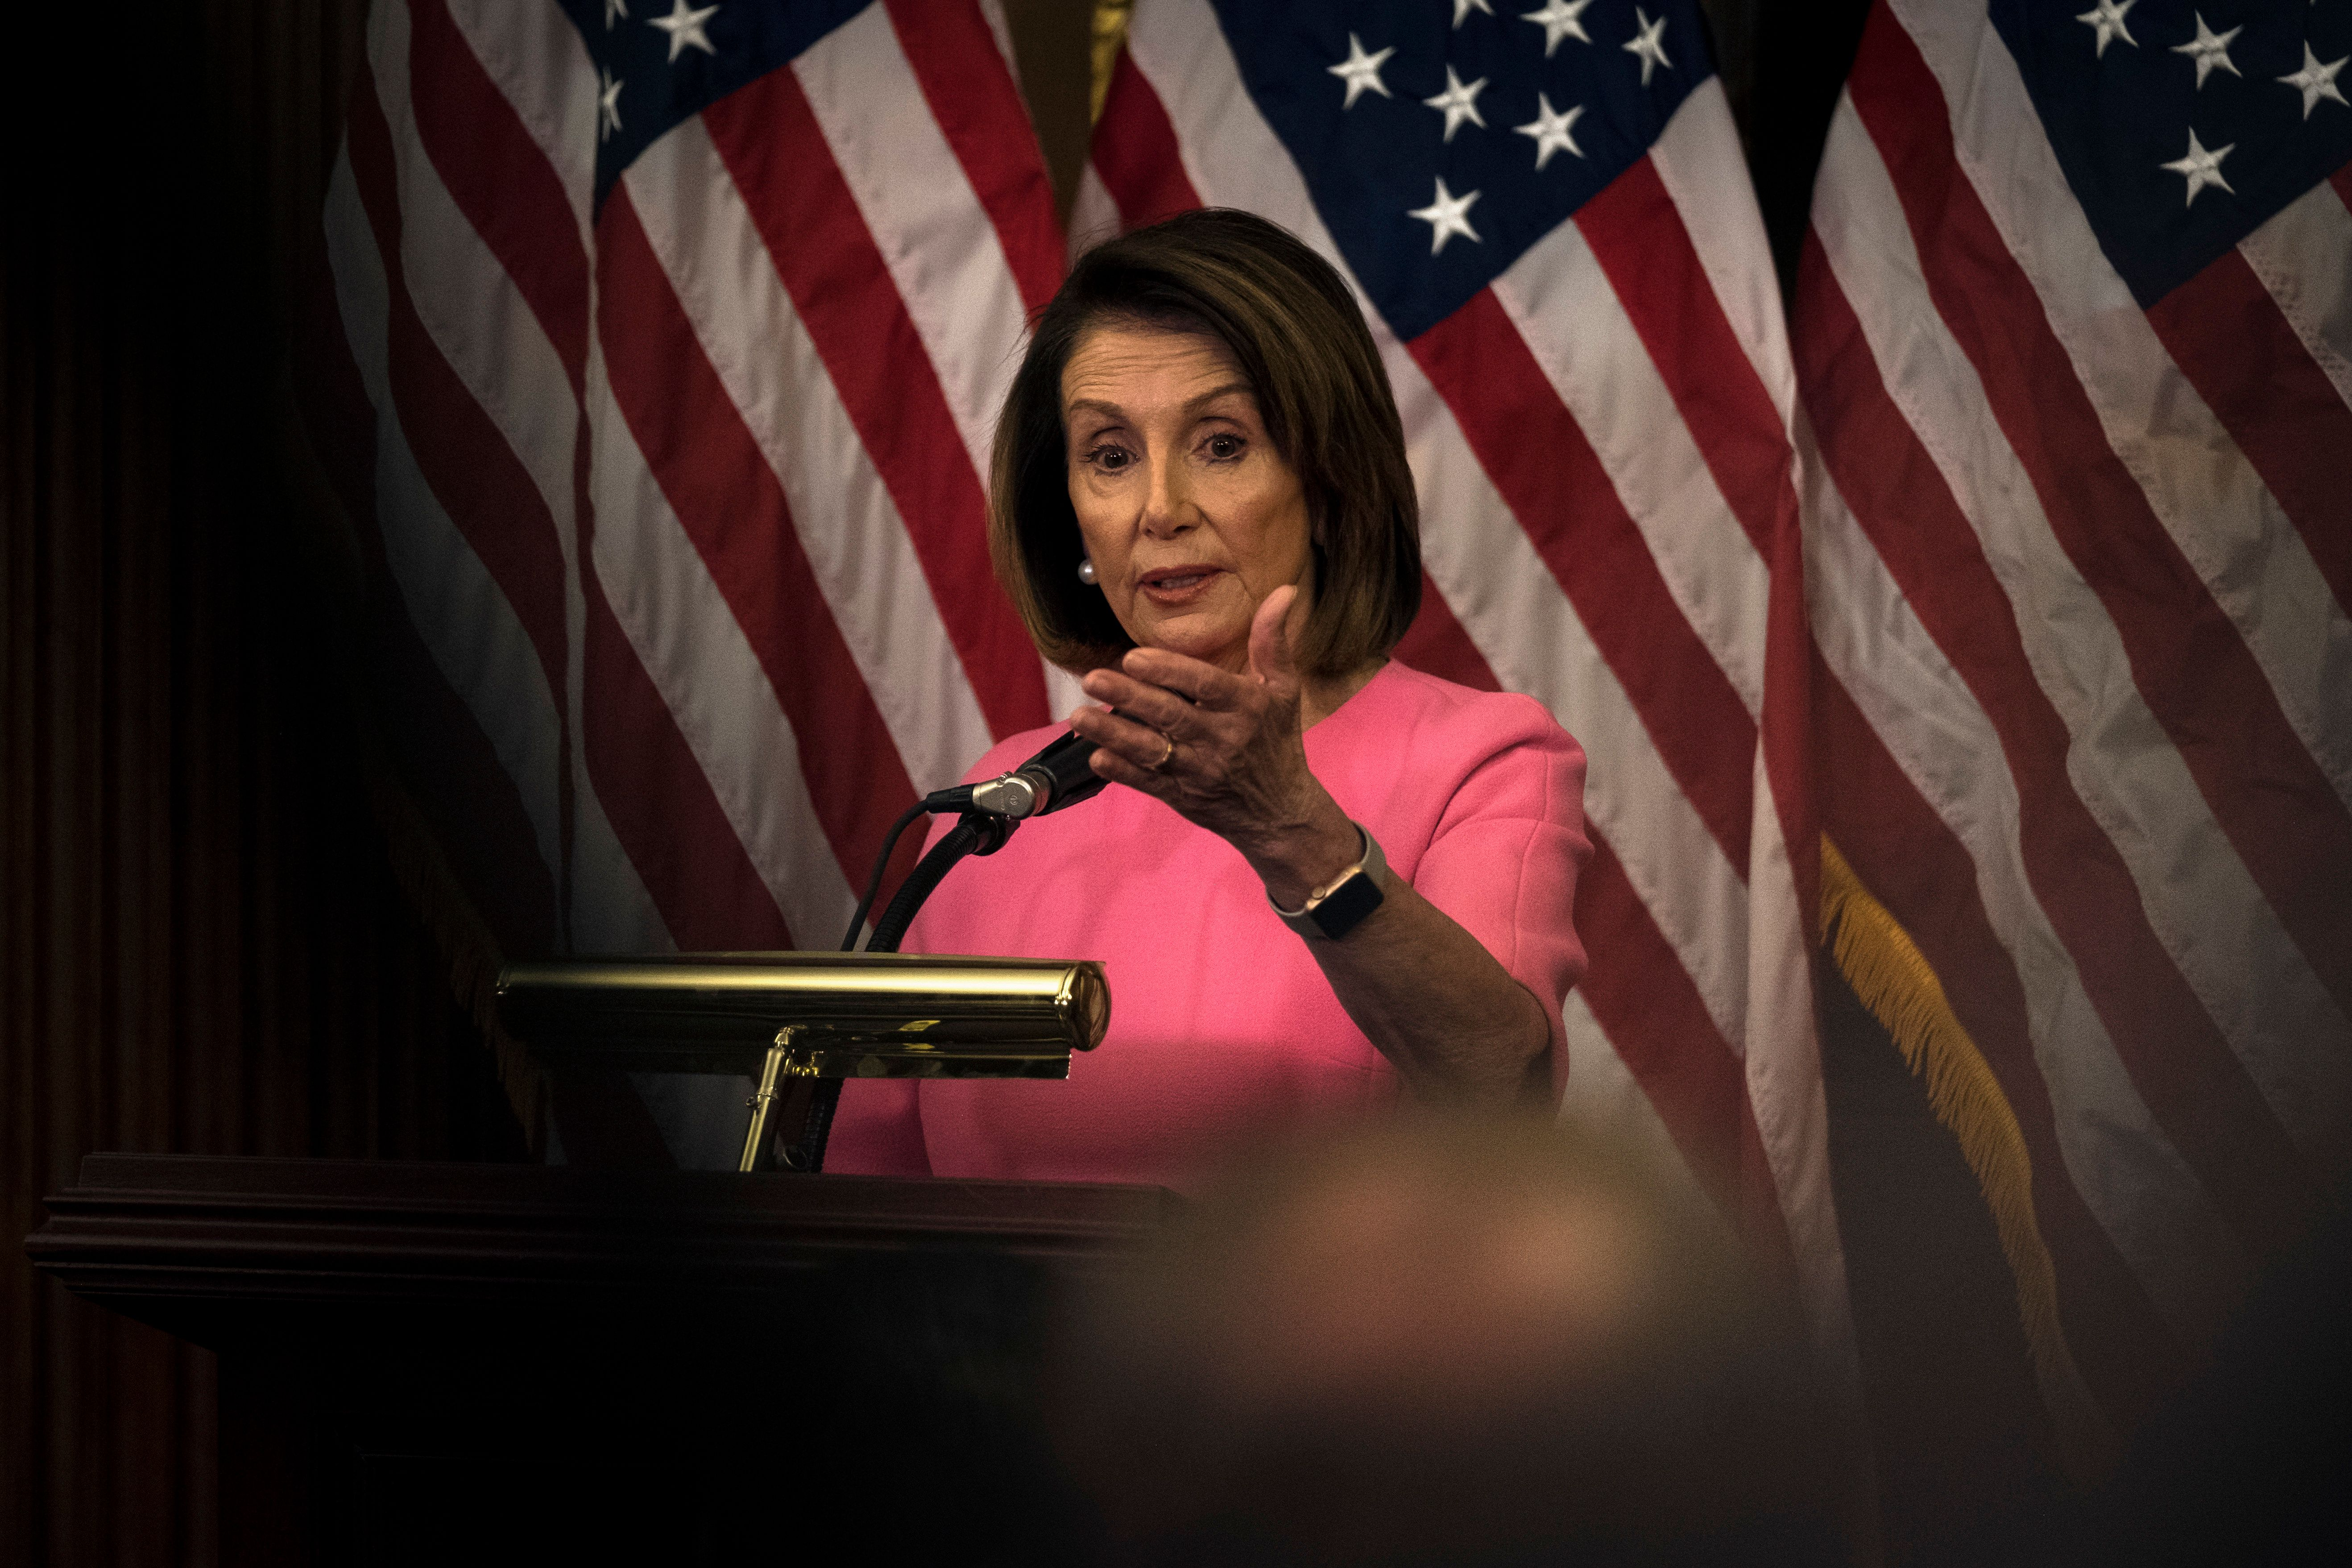 WASHINGTON, DC - NOVEMBER 7: Democratic Leader Nancy Pelosi (R-CA) speaks with reporters in the Rayburn Room at the Capitol in Washington Wednesday November 7, 2018. (Photo by J. Lawler Duggan/For The Washington Post via Getty Images)